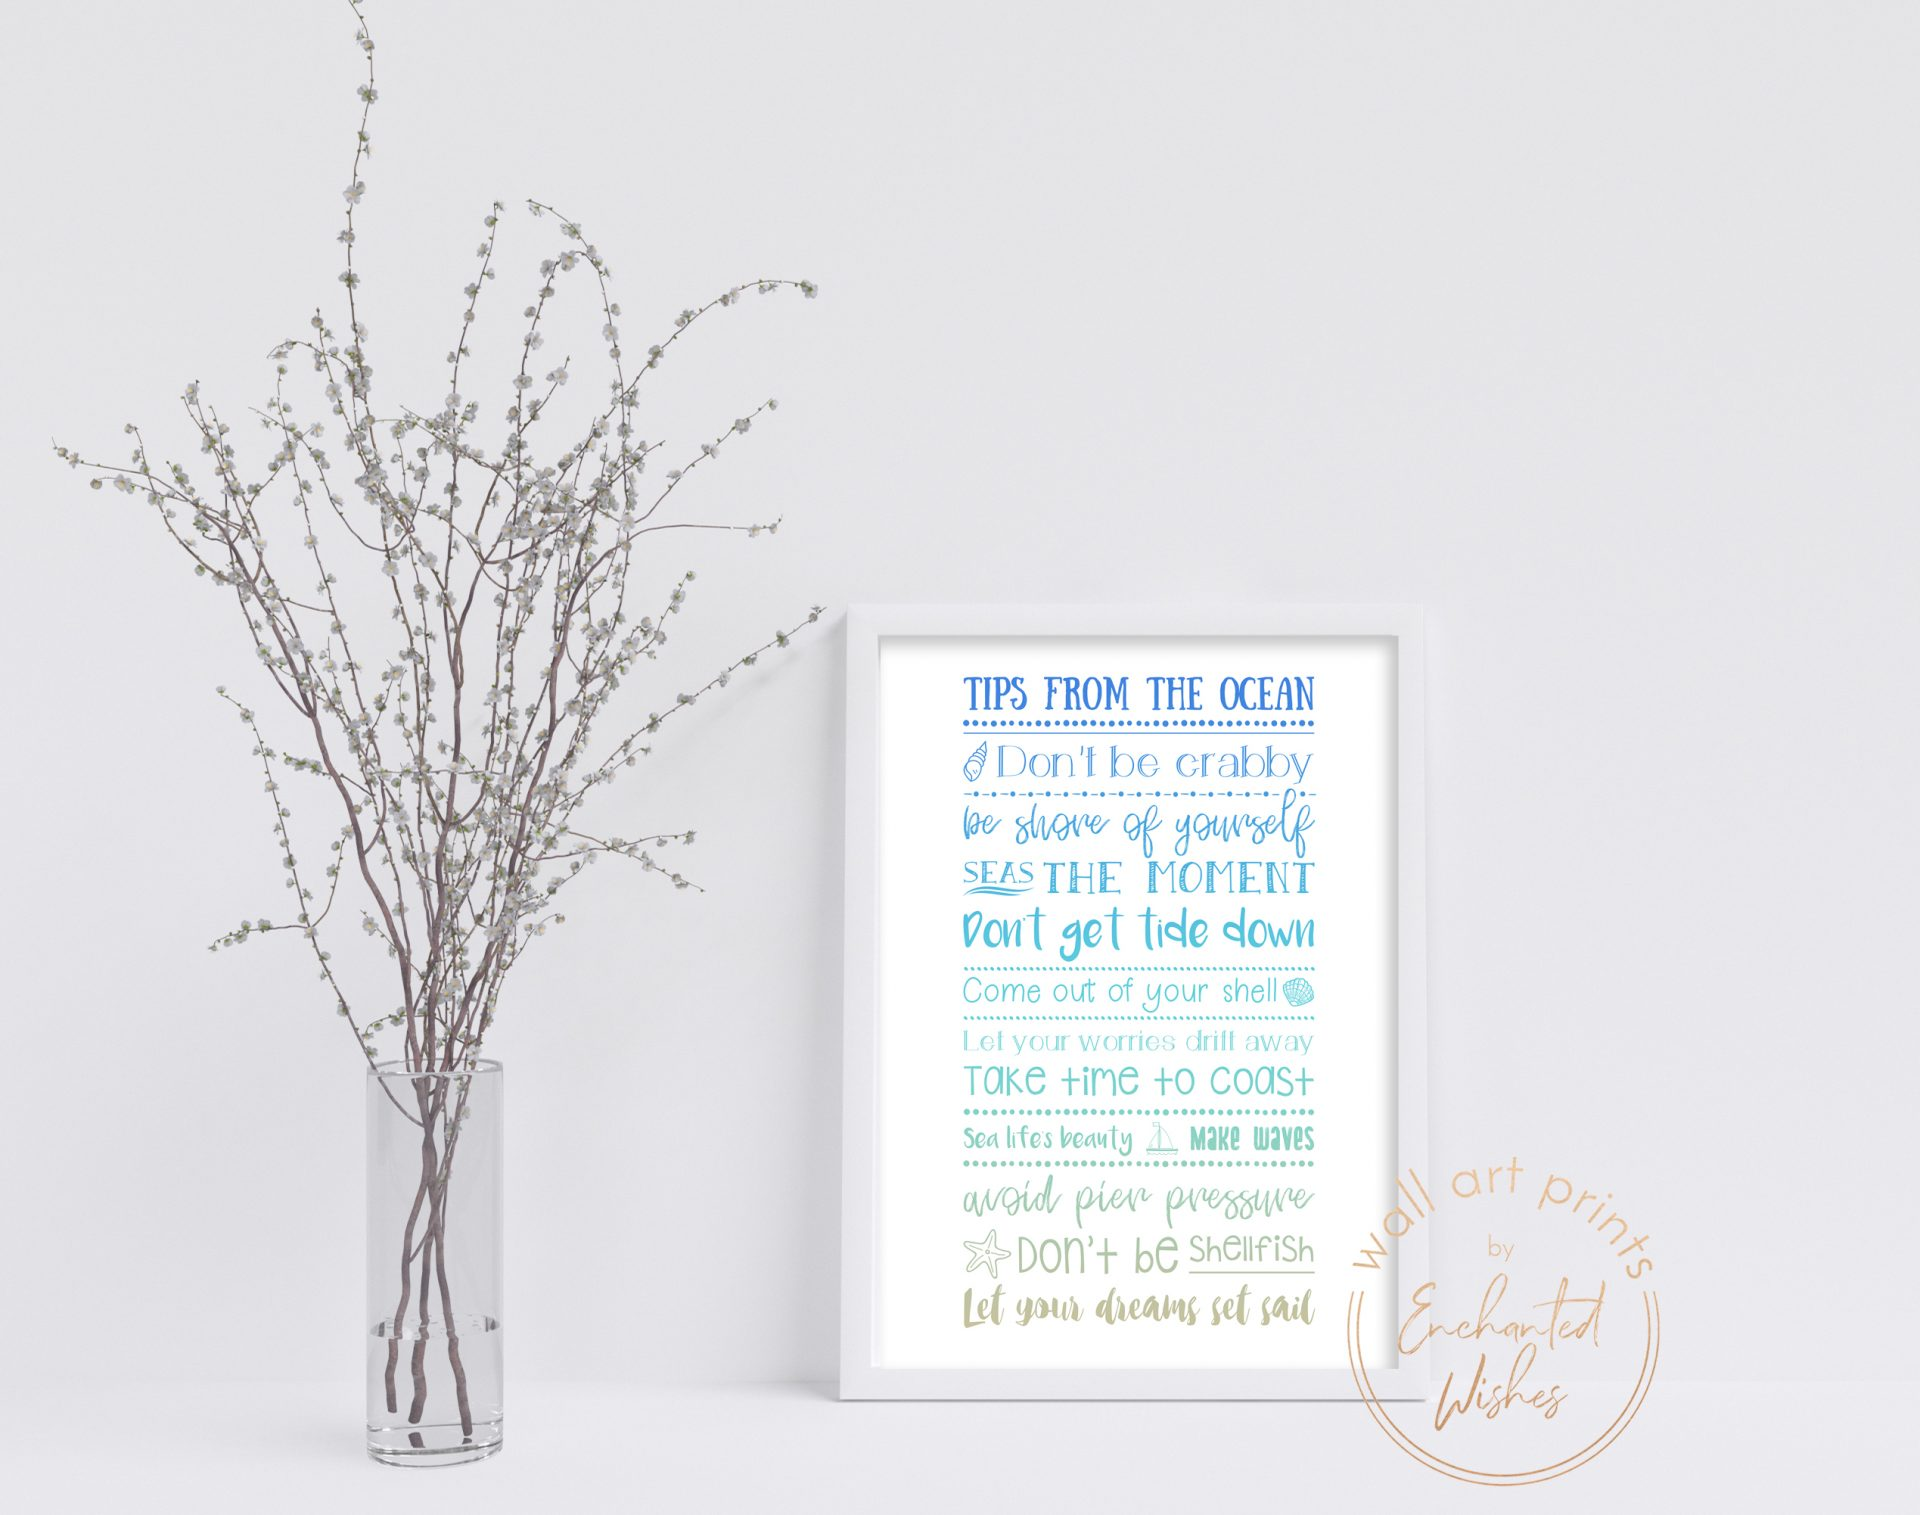 Advice from the ocean print